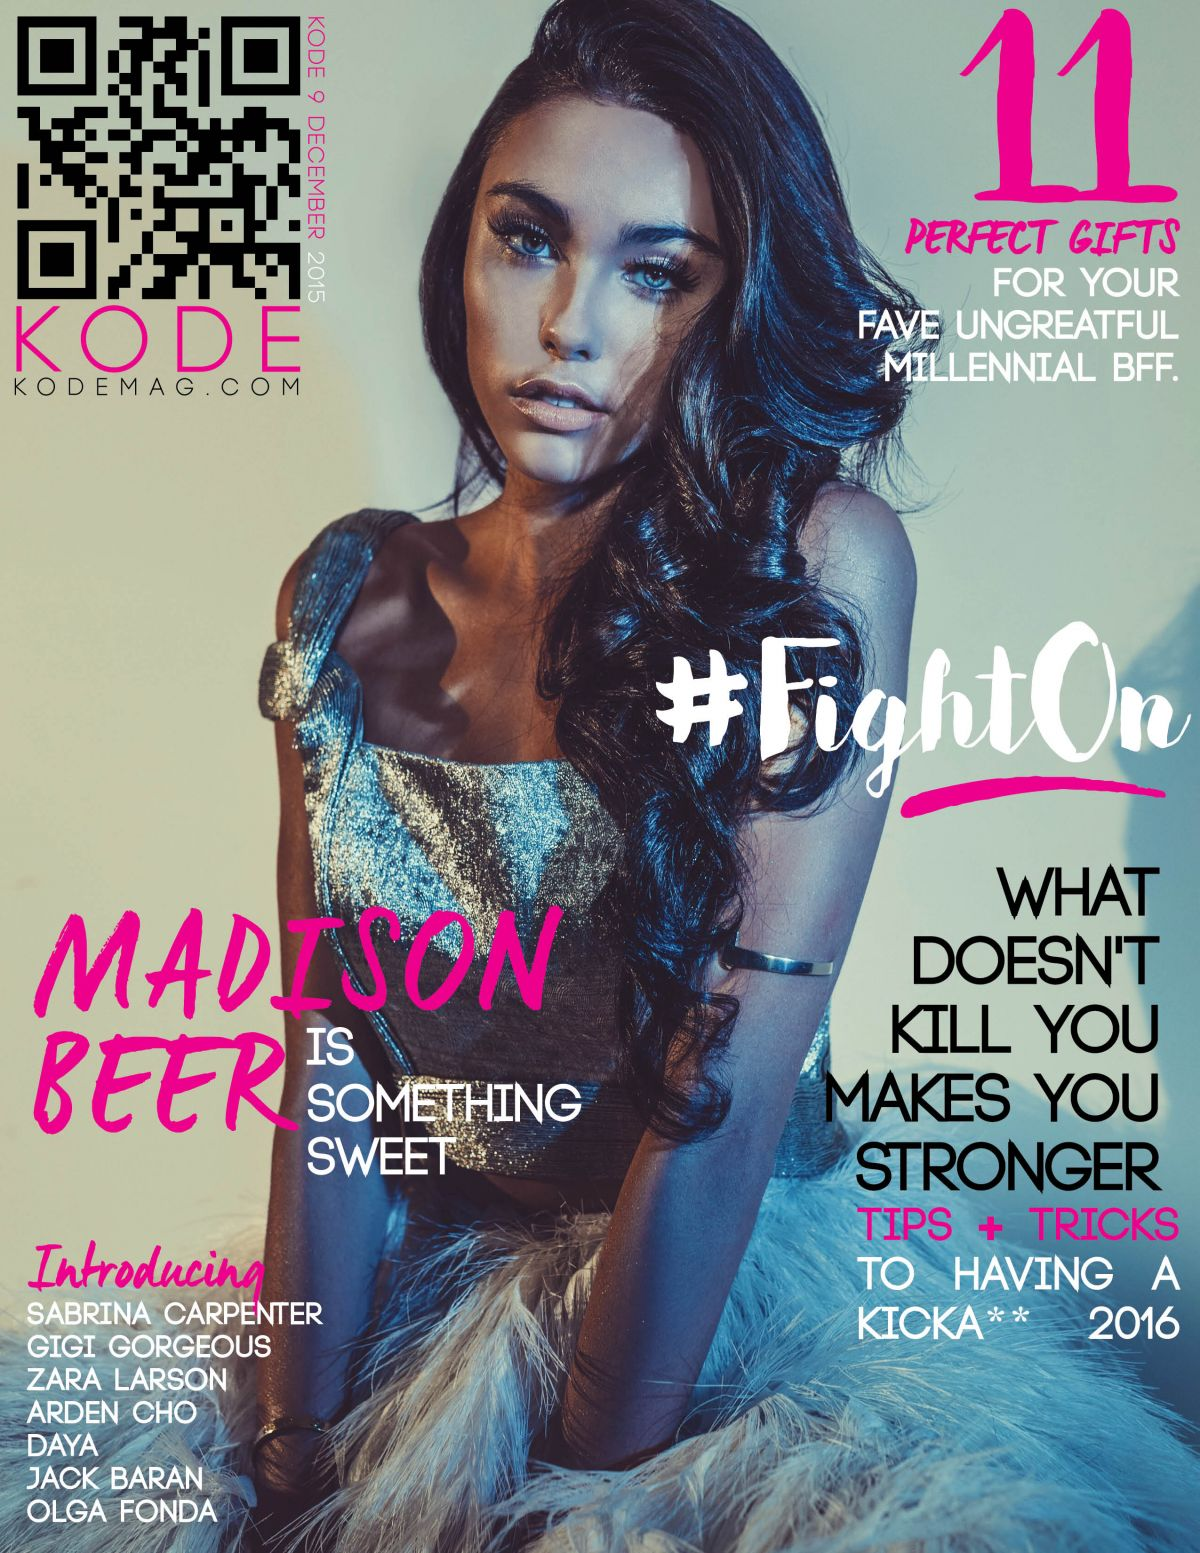 MADISON BEER in Kode Magazine, December 2015 Issue